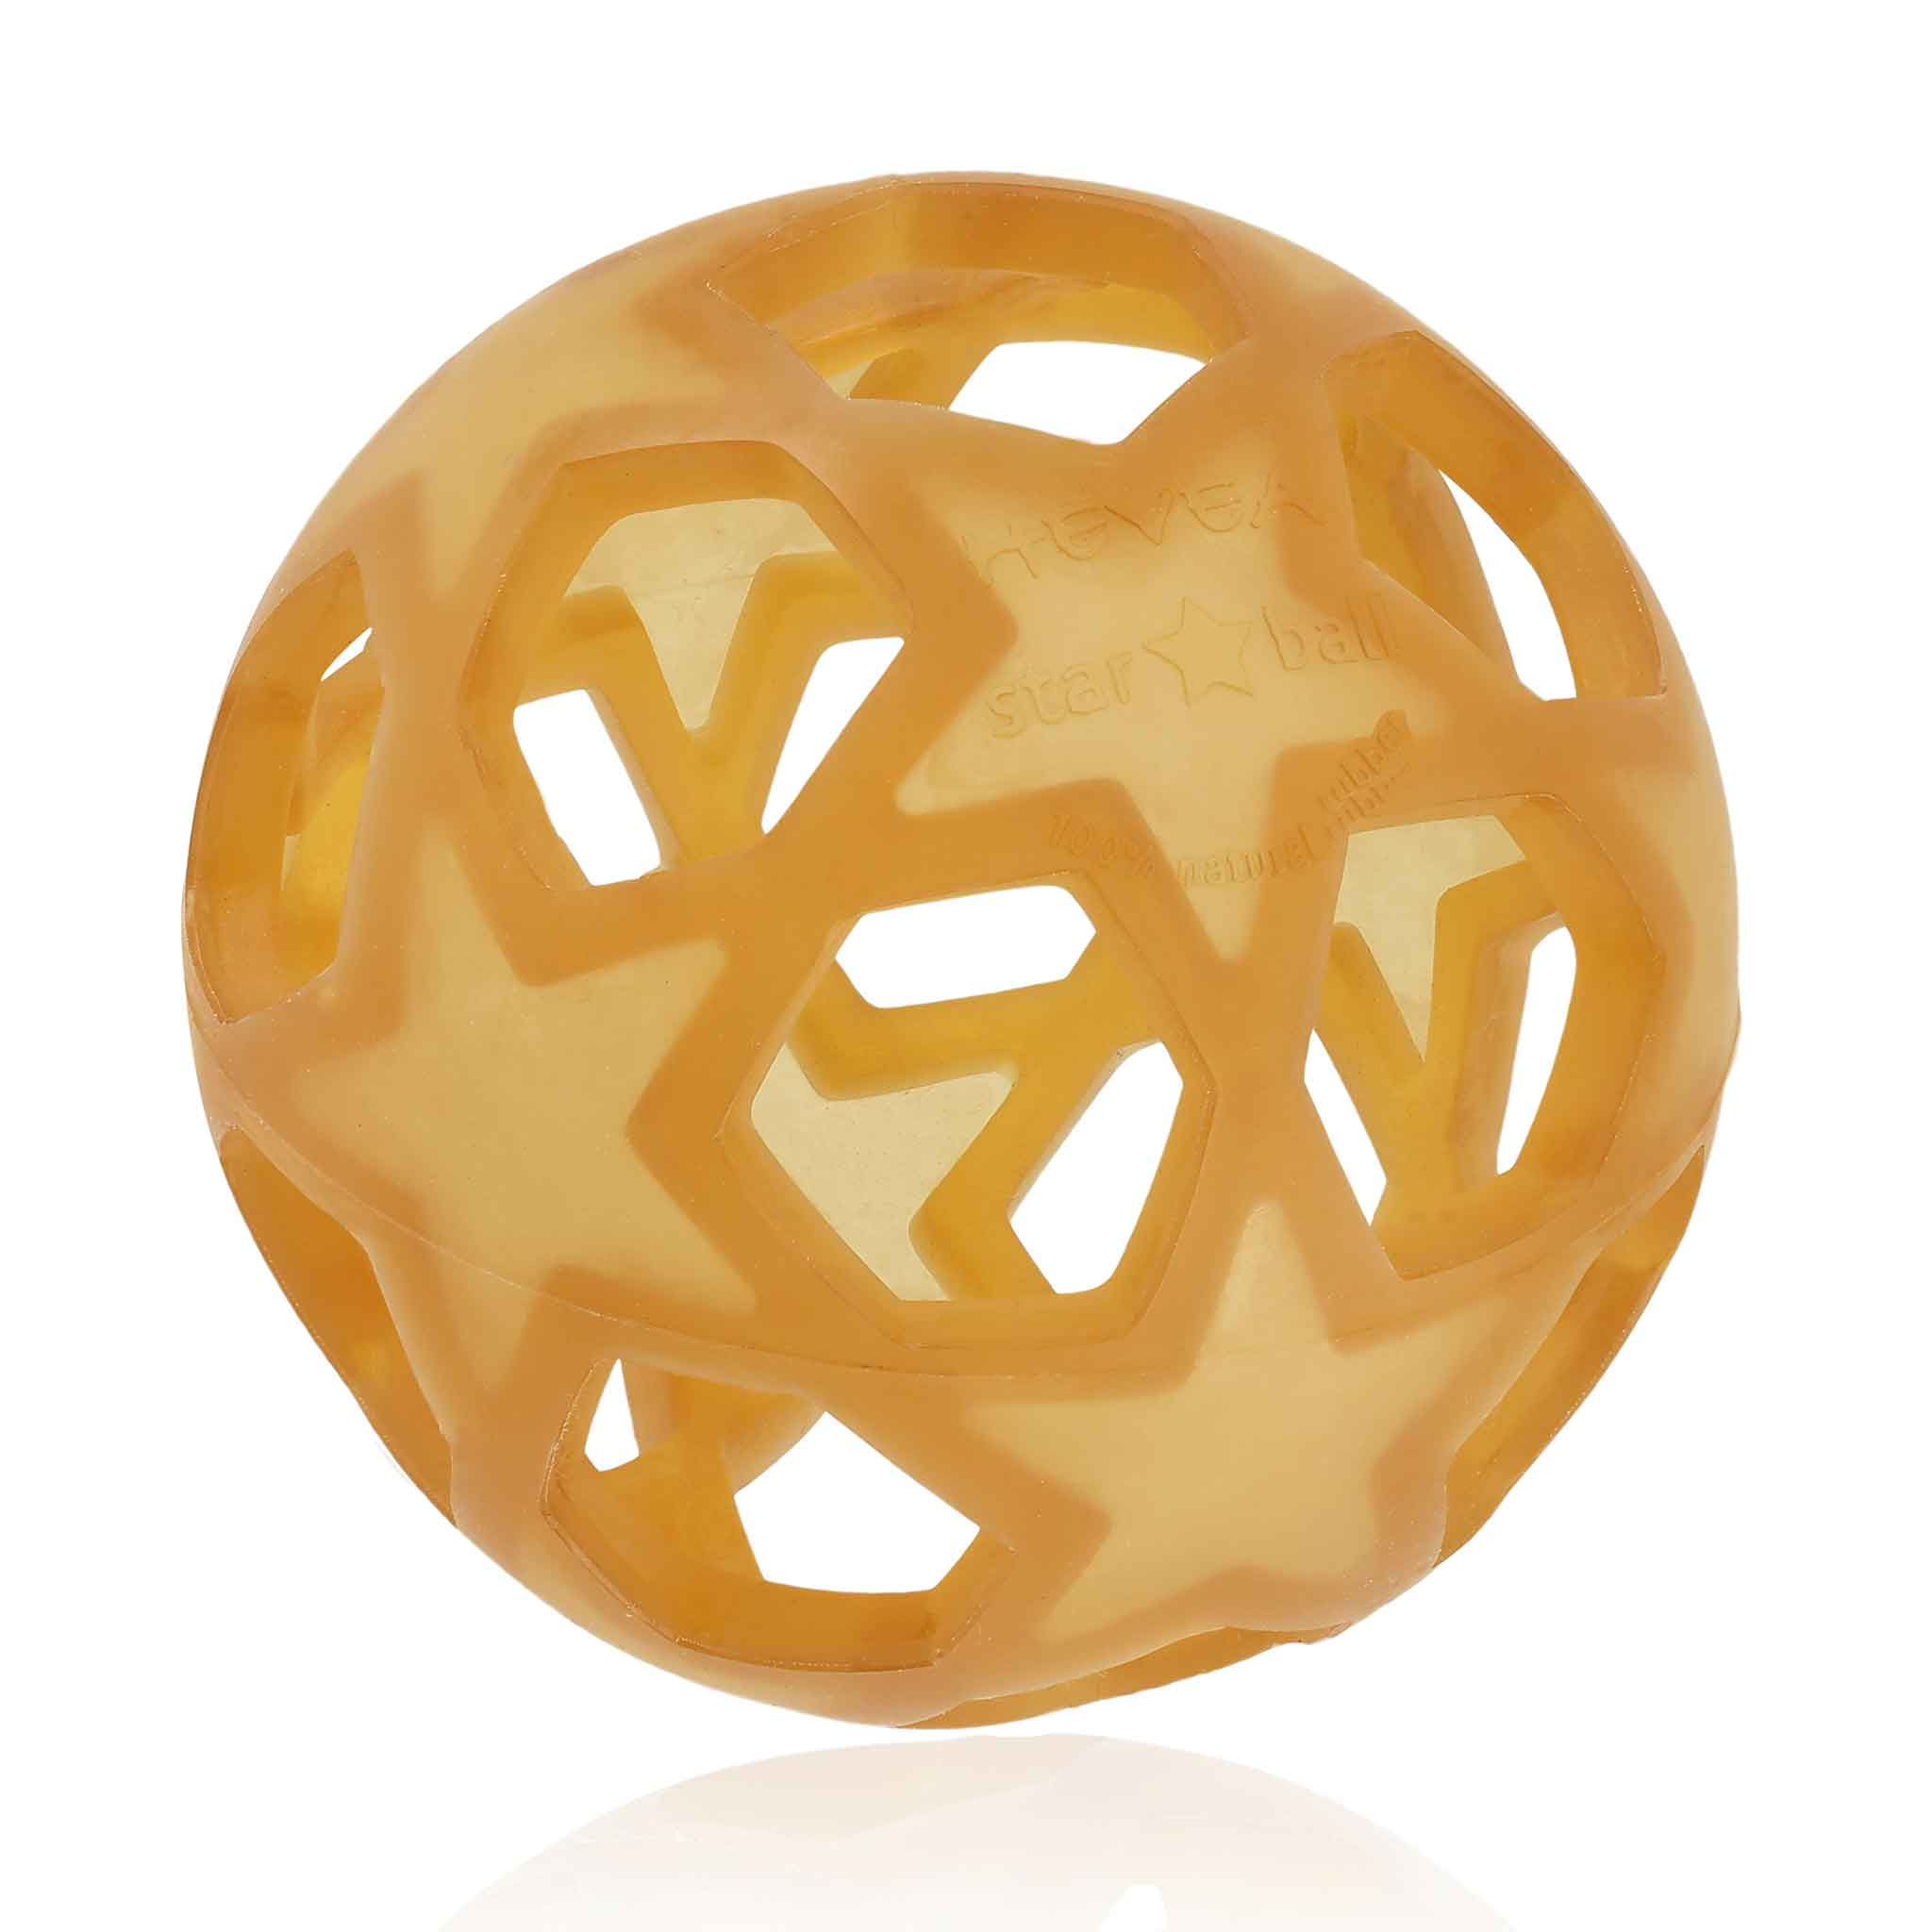 HEVEA Natural Rubber Star Ball Natural